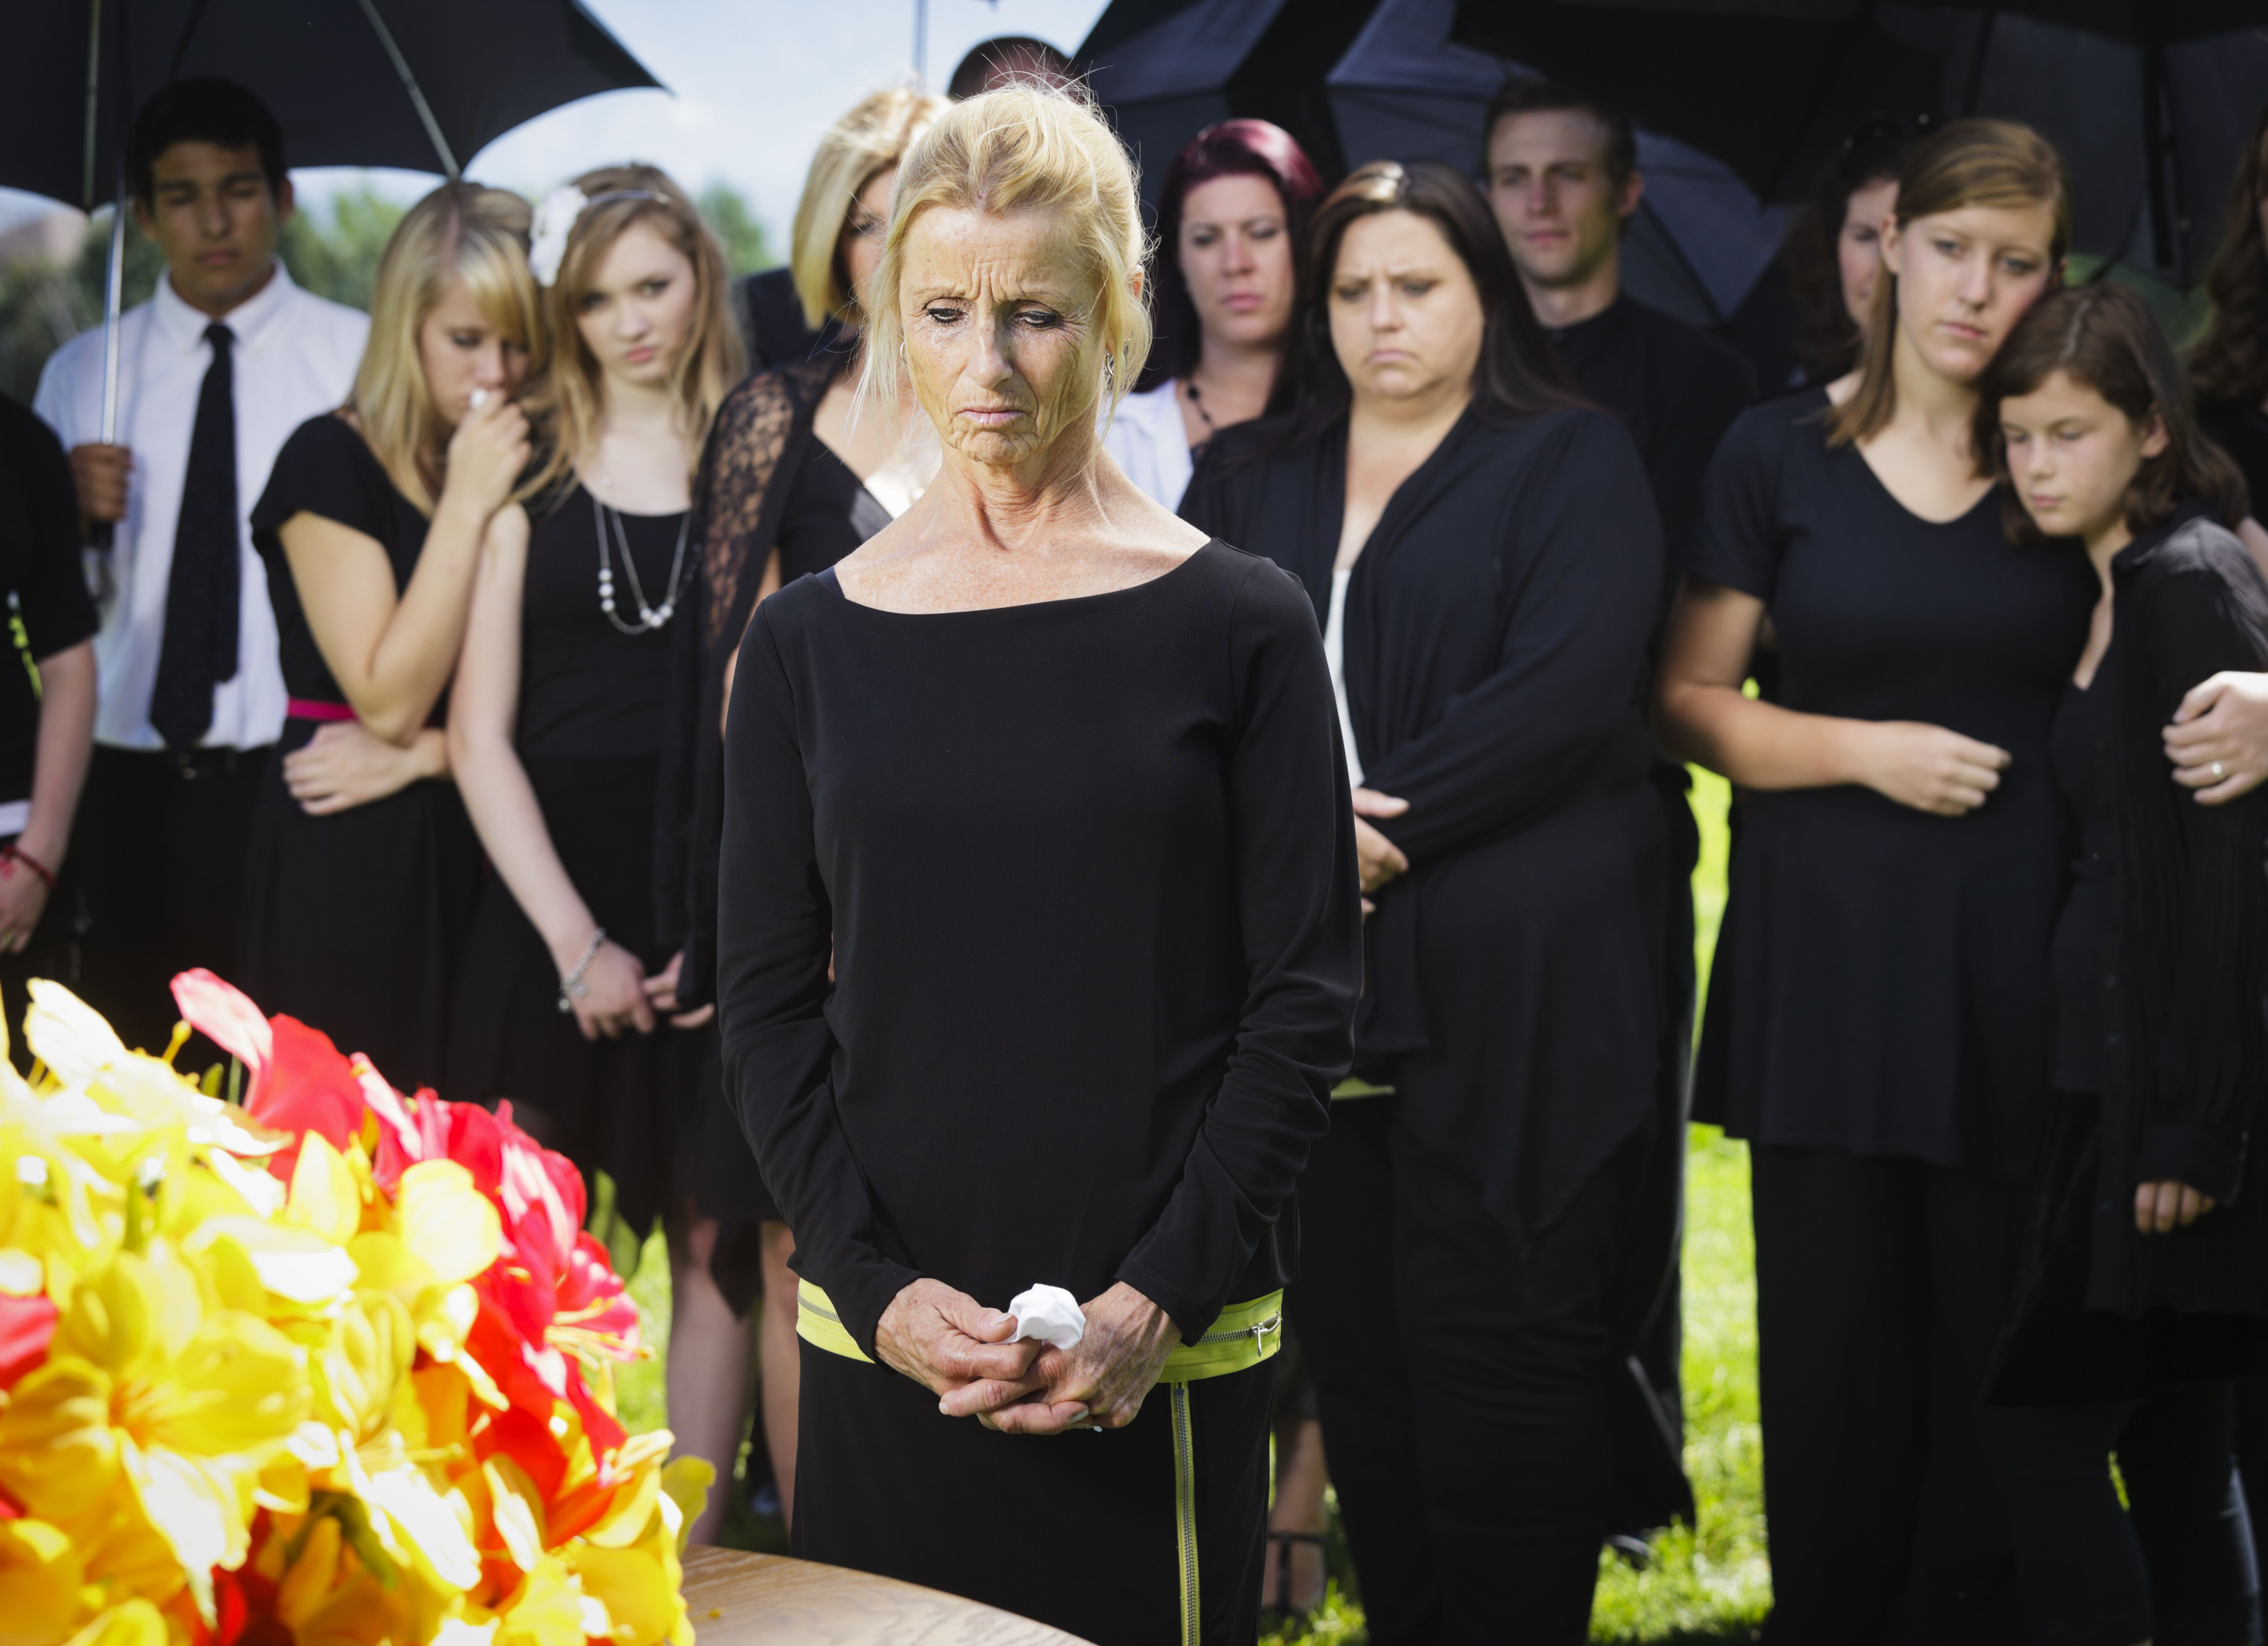 Frequently Asked Questions About Funeral Etiquette